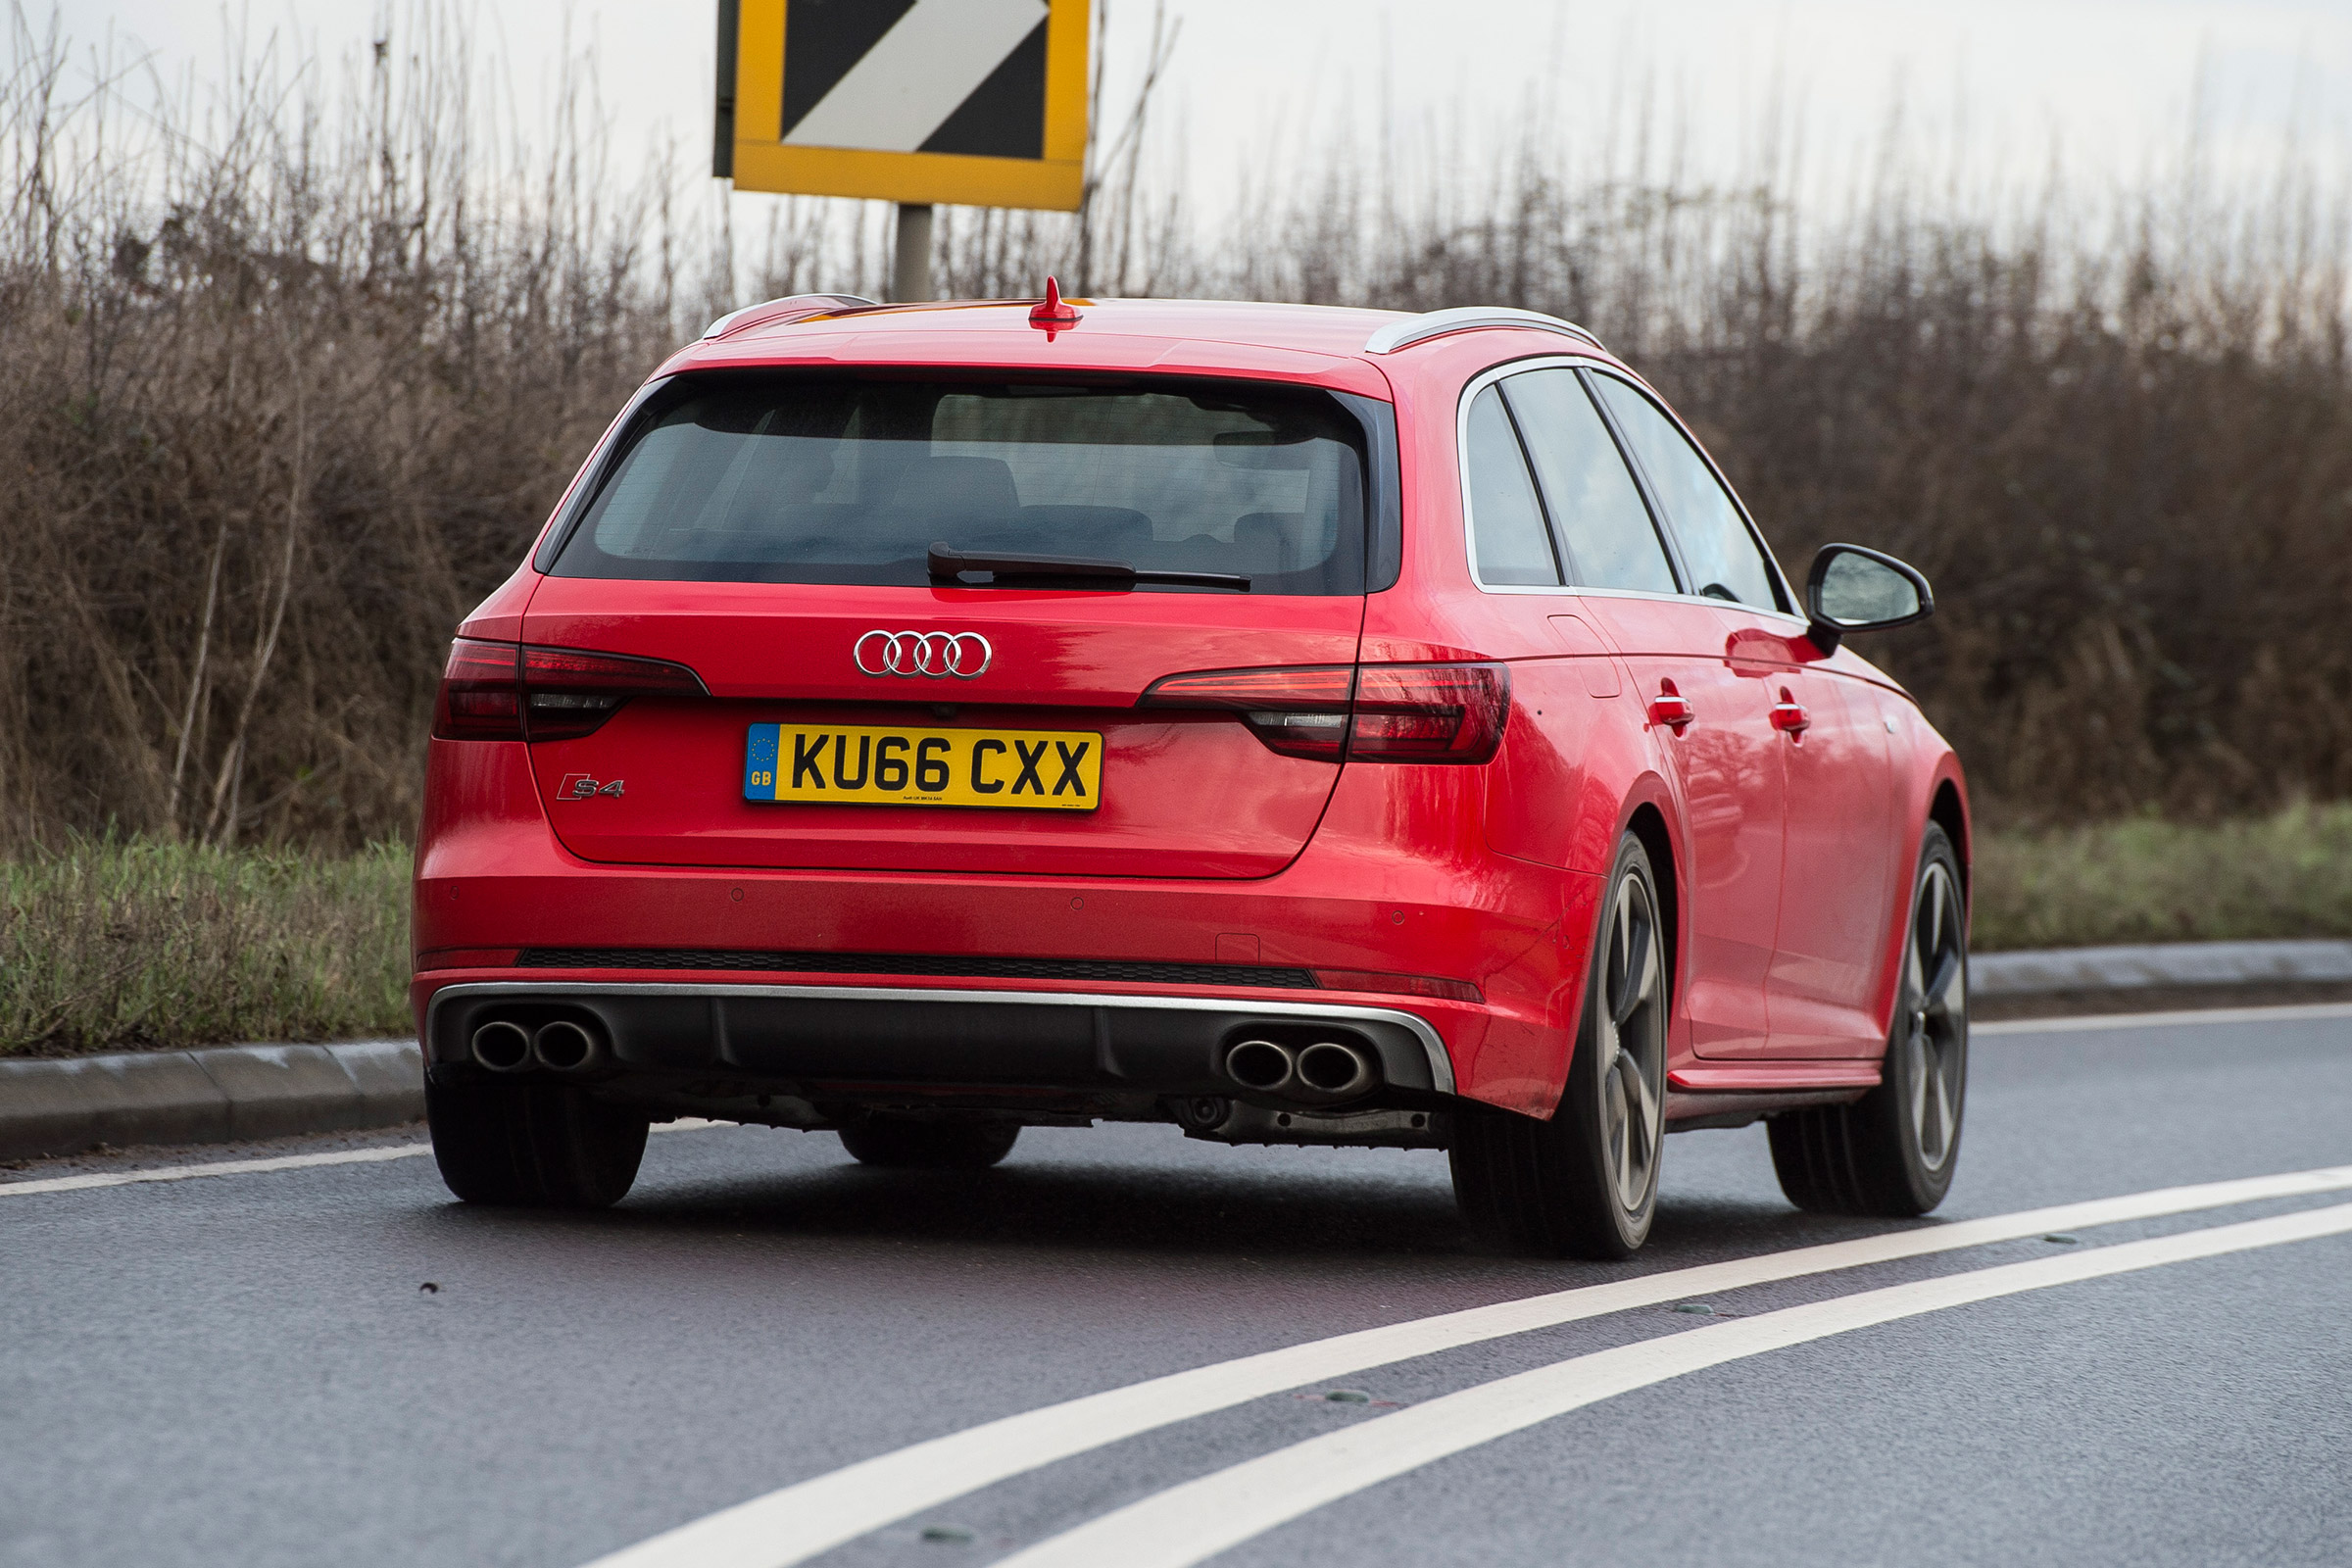 2017 Audi S4 Avant Test Drive Rear View (Photo 16 of 17)